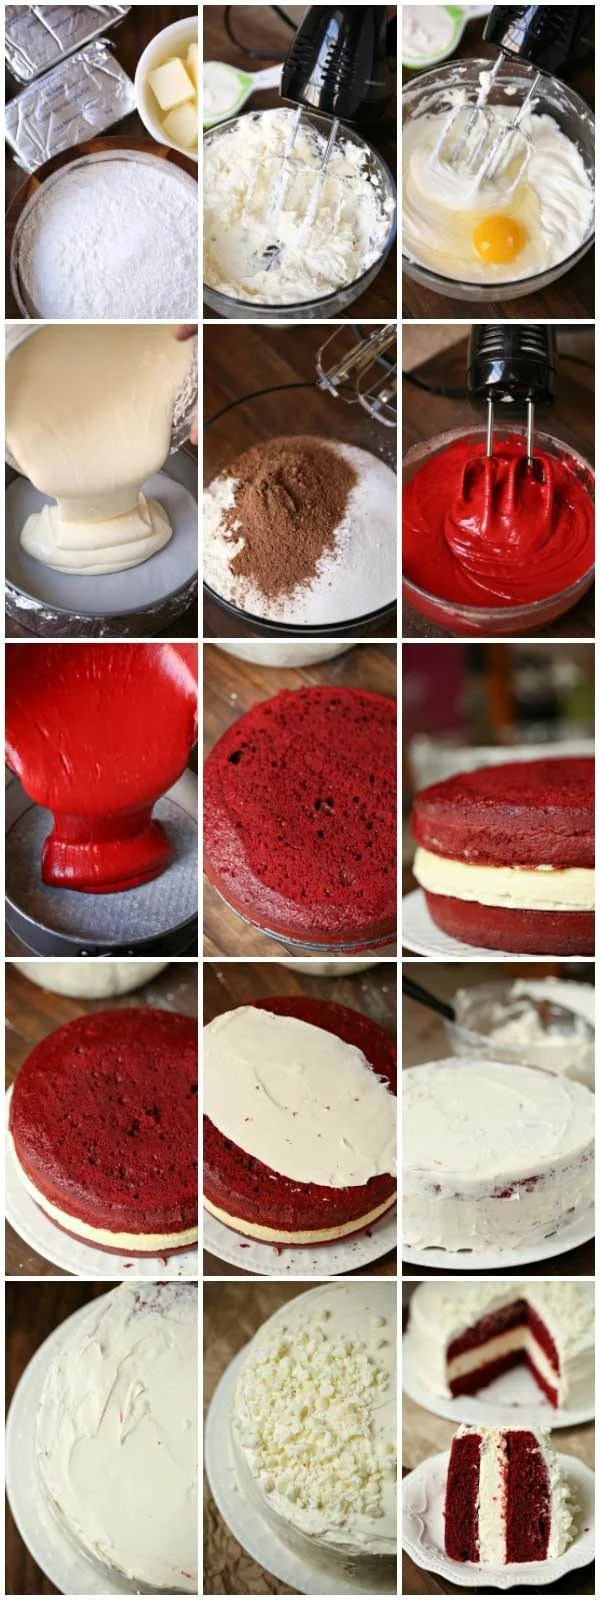 Step by step pictures showing how to make red velvet cheesecake cake.